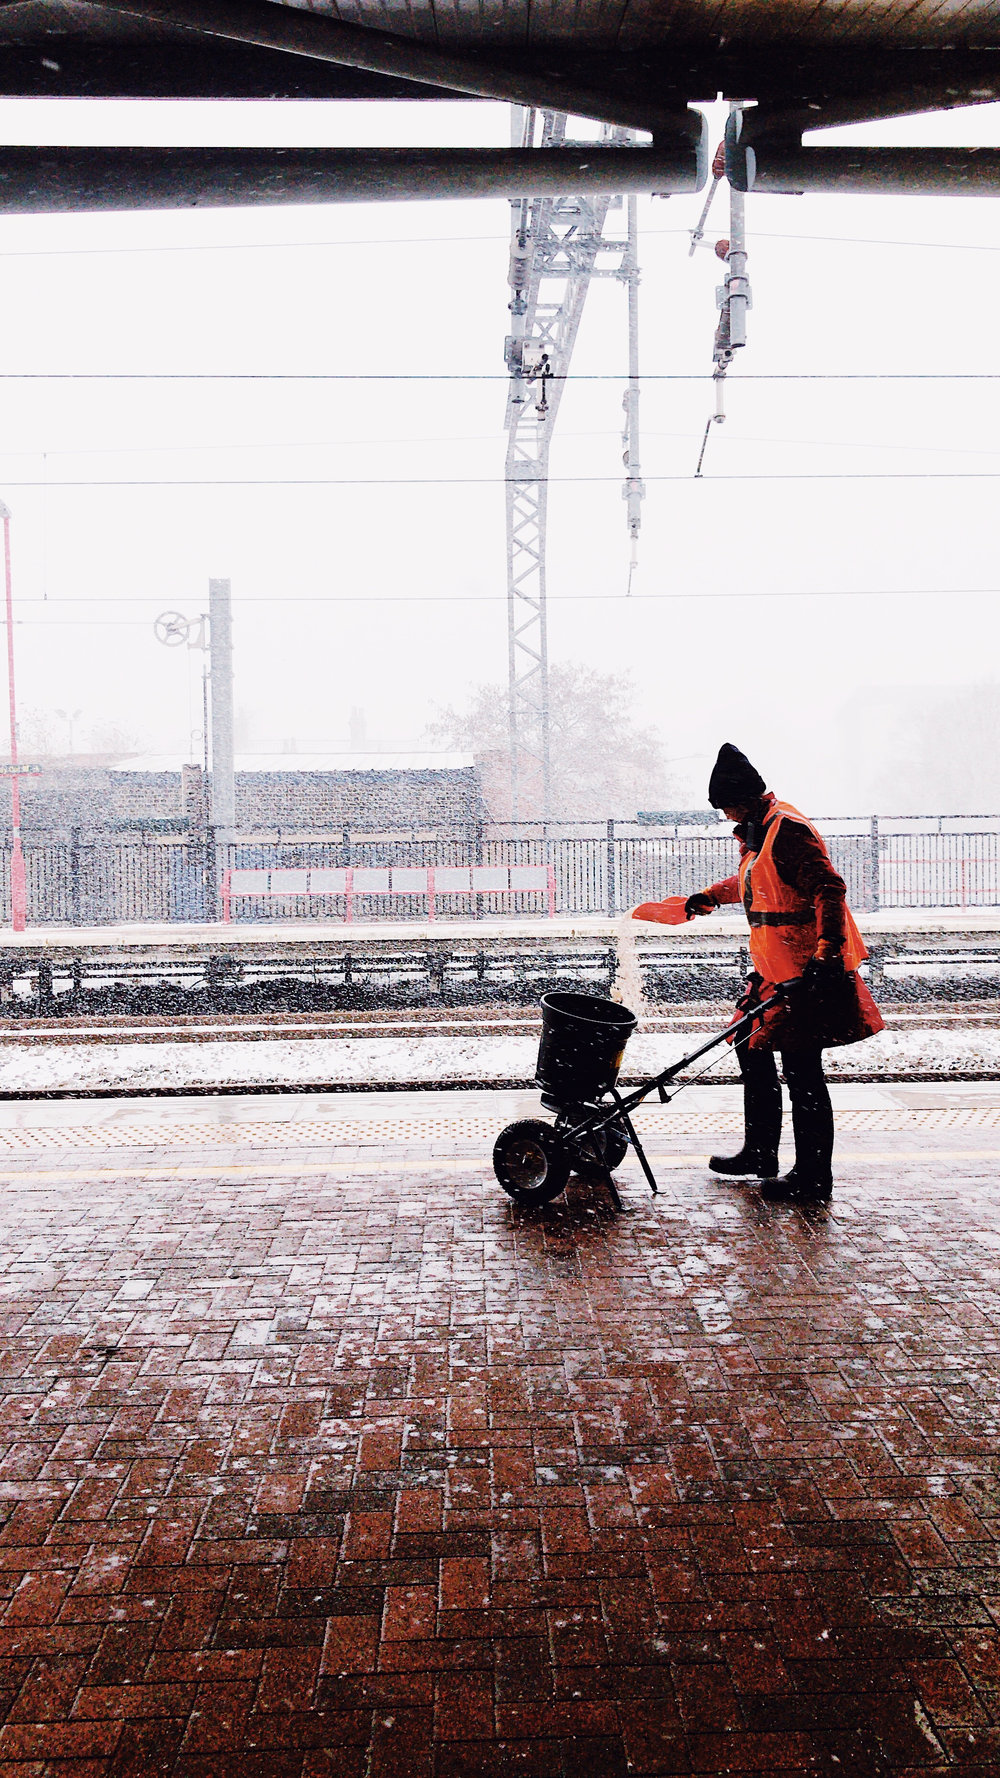 Gritting The Platform